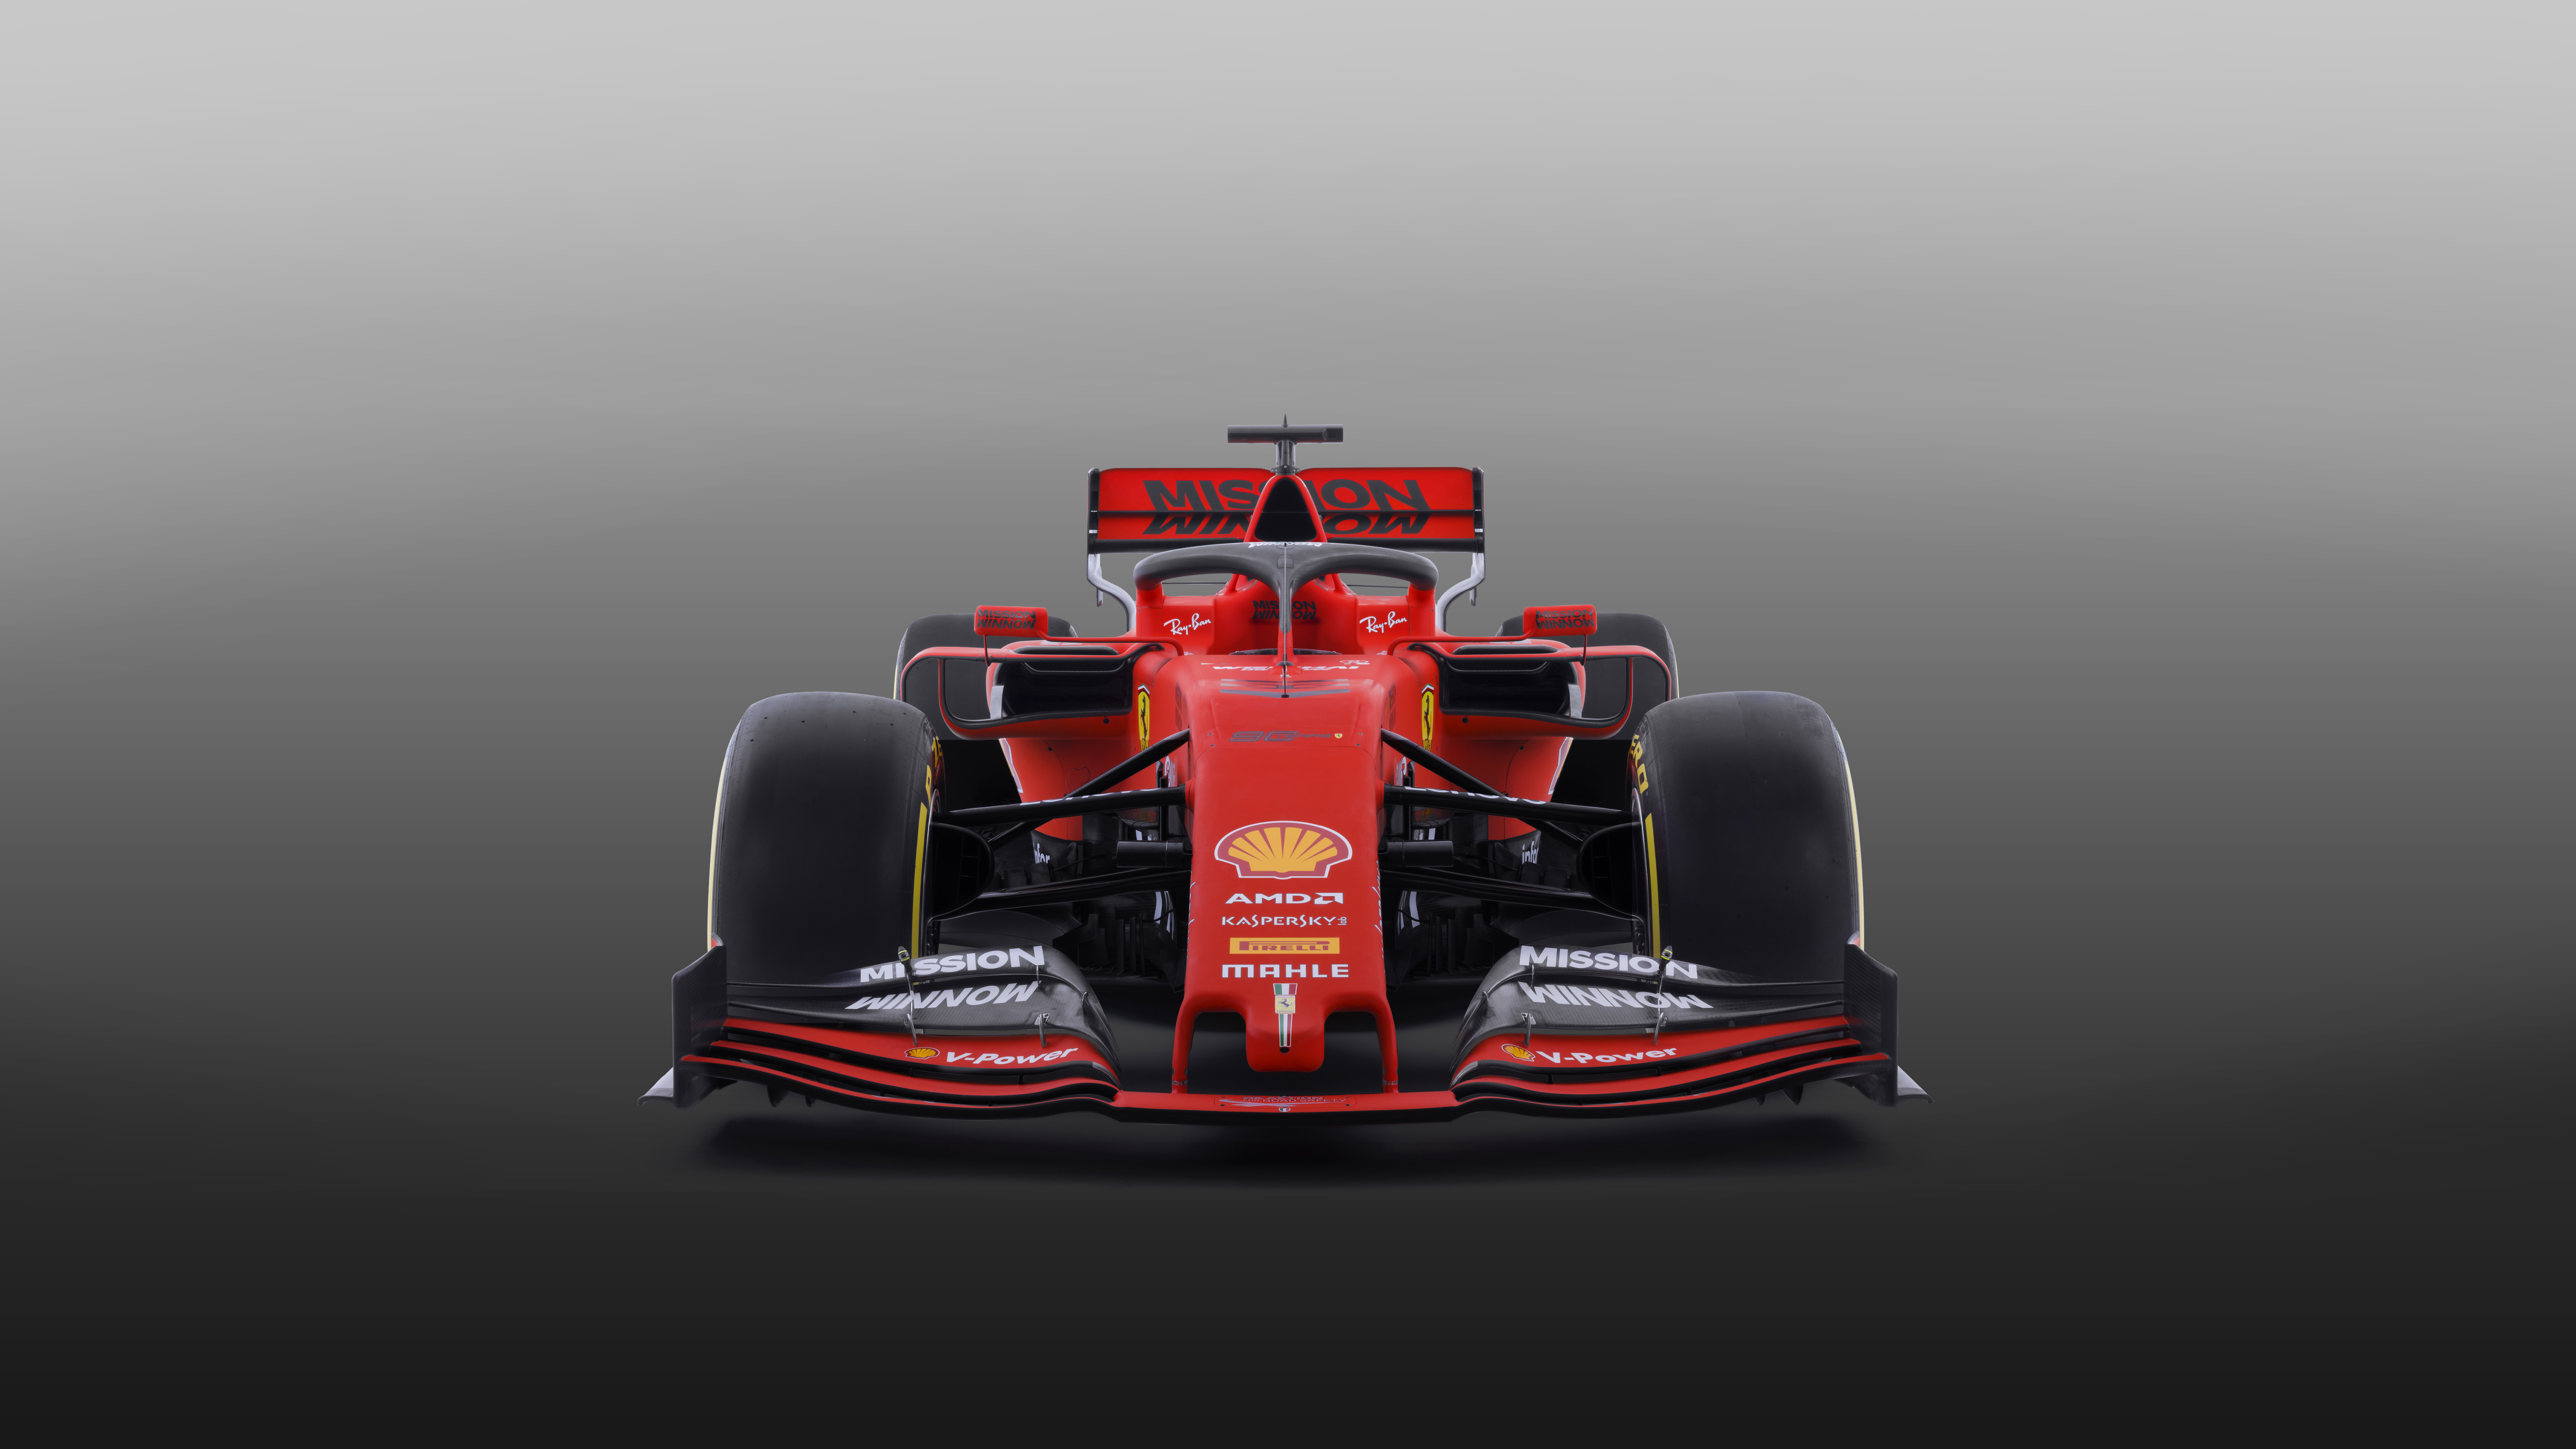 Ferrari Sf90 F1 2019 4k 5k Wallpapers F1 2019 Wallpaper 4k